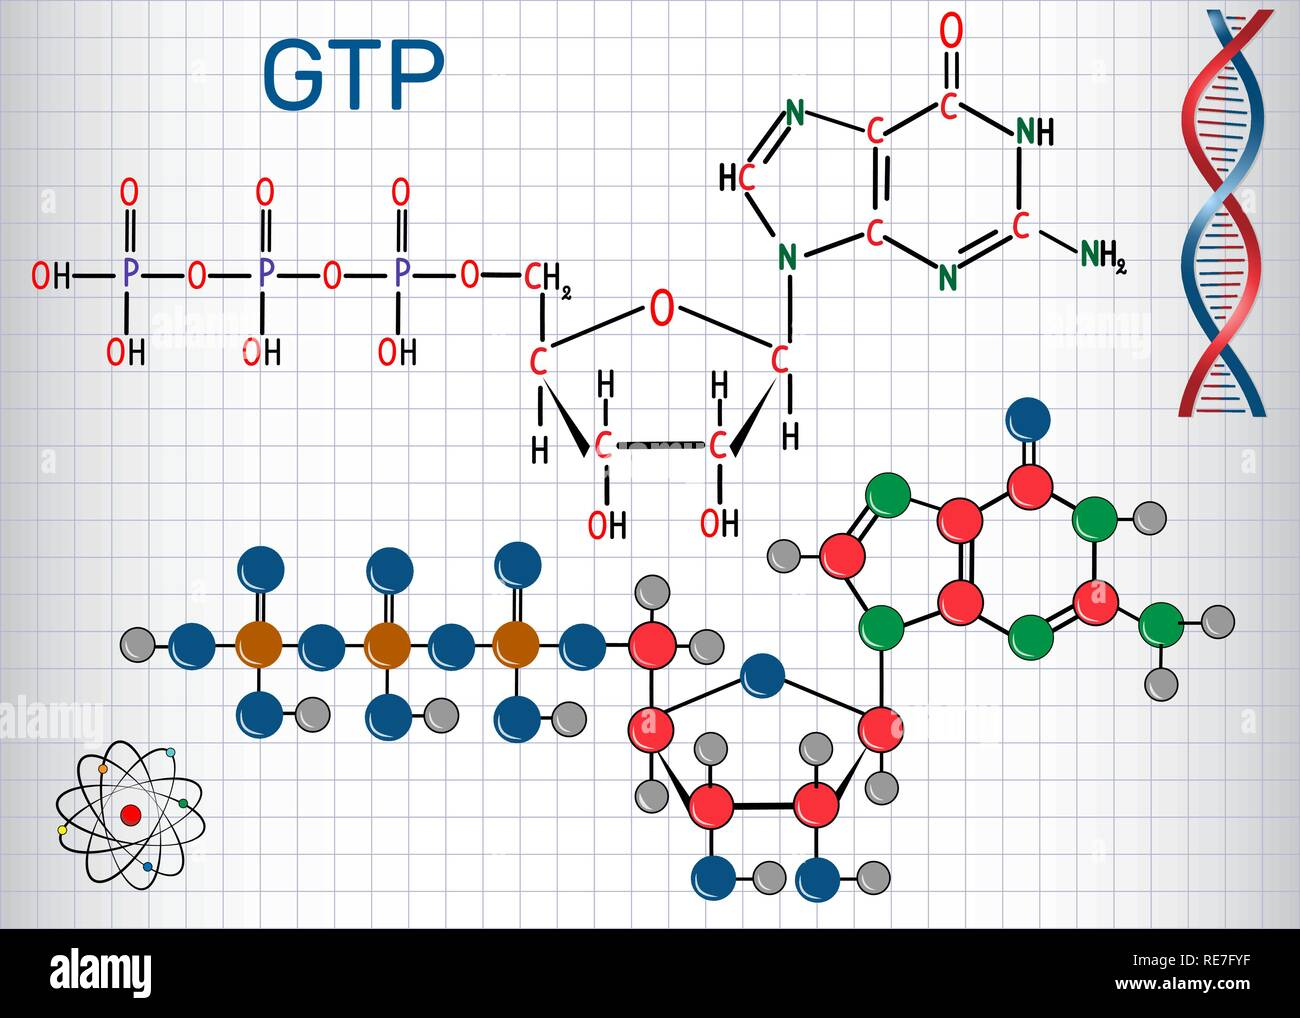 Guanosine triphosphate (GTP) molecule, it is used in synthesis of RNA and as a source of energy for protein synthesis. Sheet of paper in a cage. Struc - Stock Image